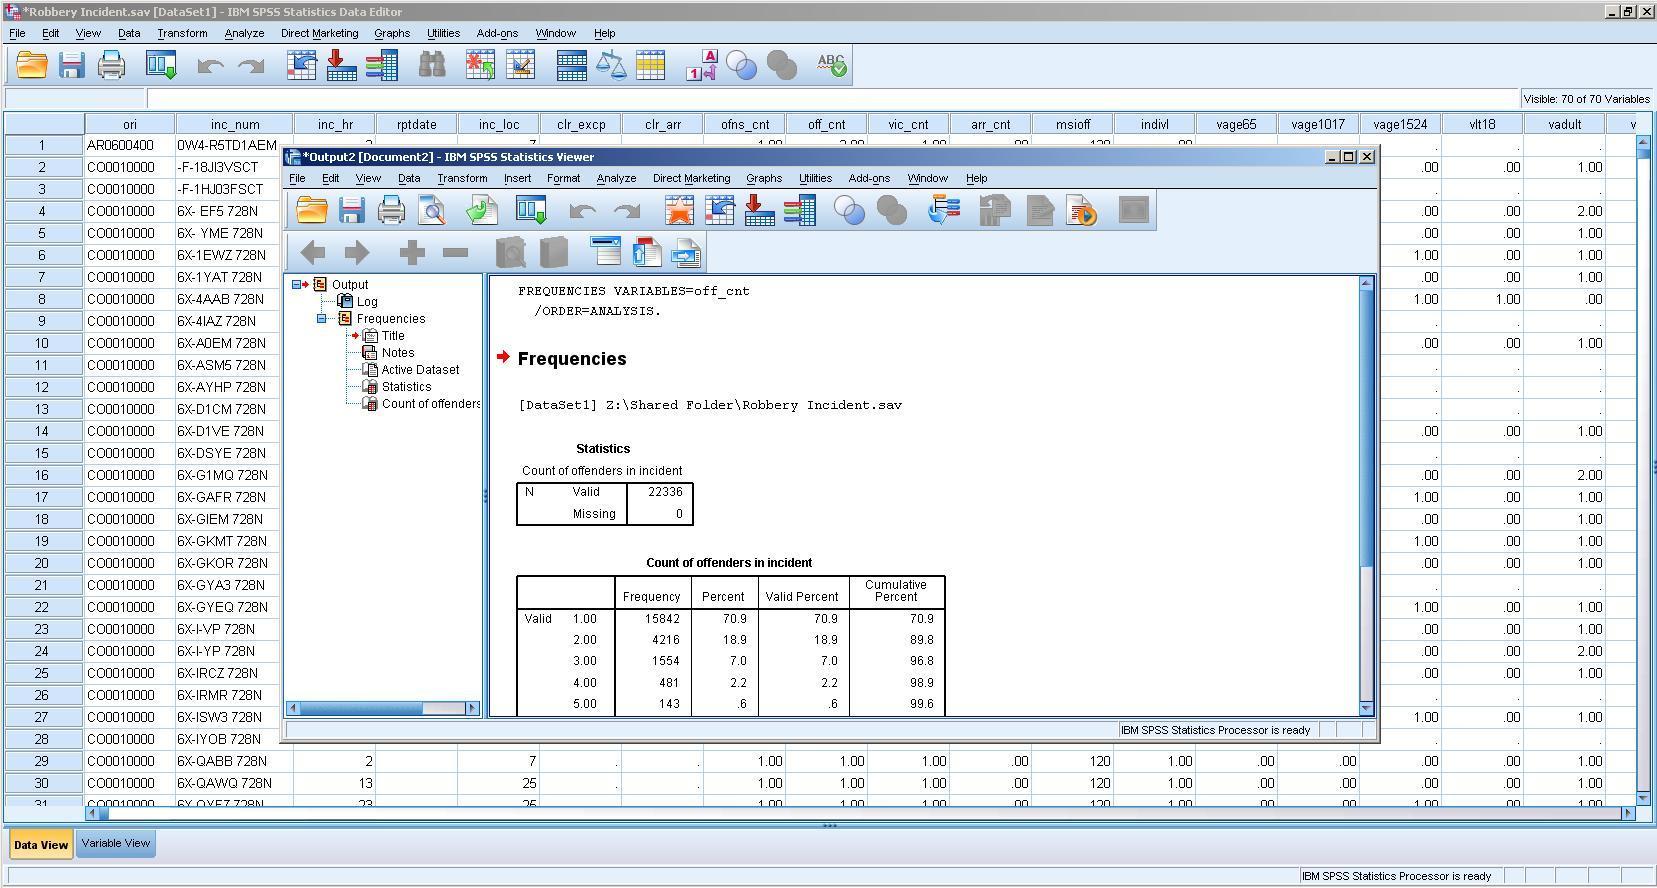 SPSS Statistics Viewer - Frequency Statistics